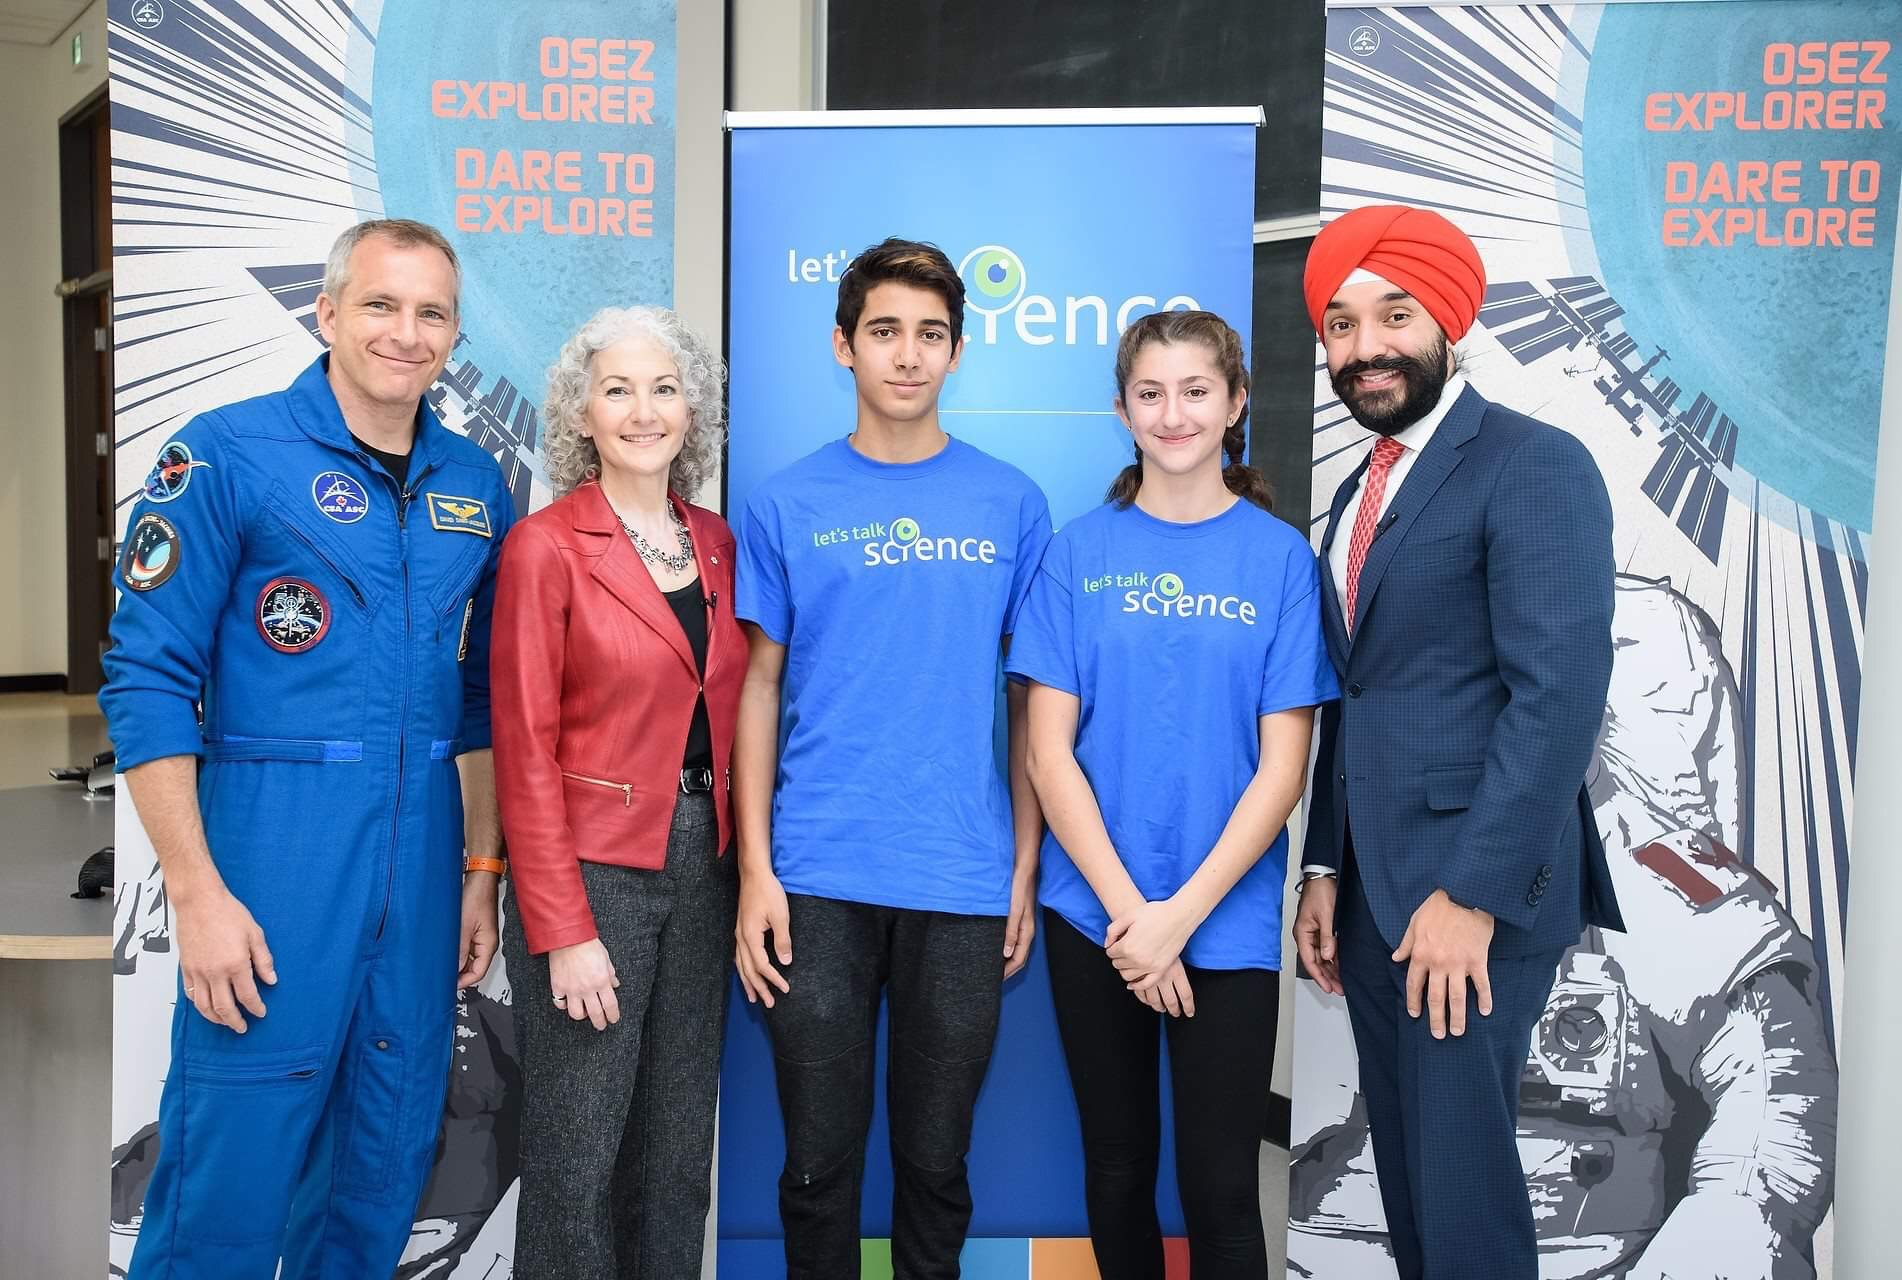 Canadian Space Agency Astronaut David Saint-Jacques, Let's Talk Science President Bonnie Schmidt, Outreach volunteers and the Honourable Navdeep Bains pose together at an event in Ottawa.